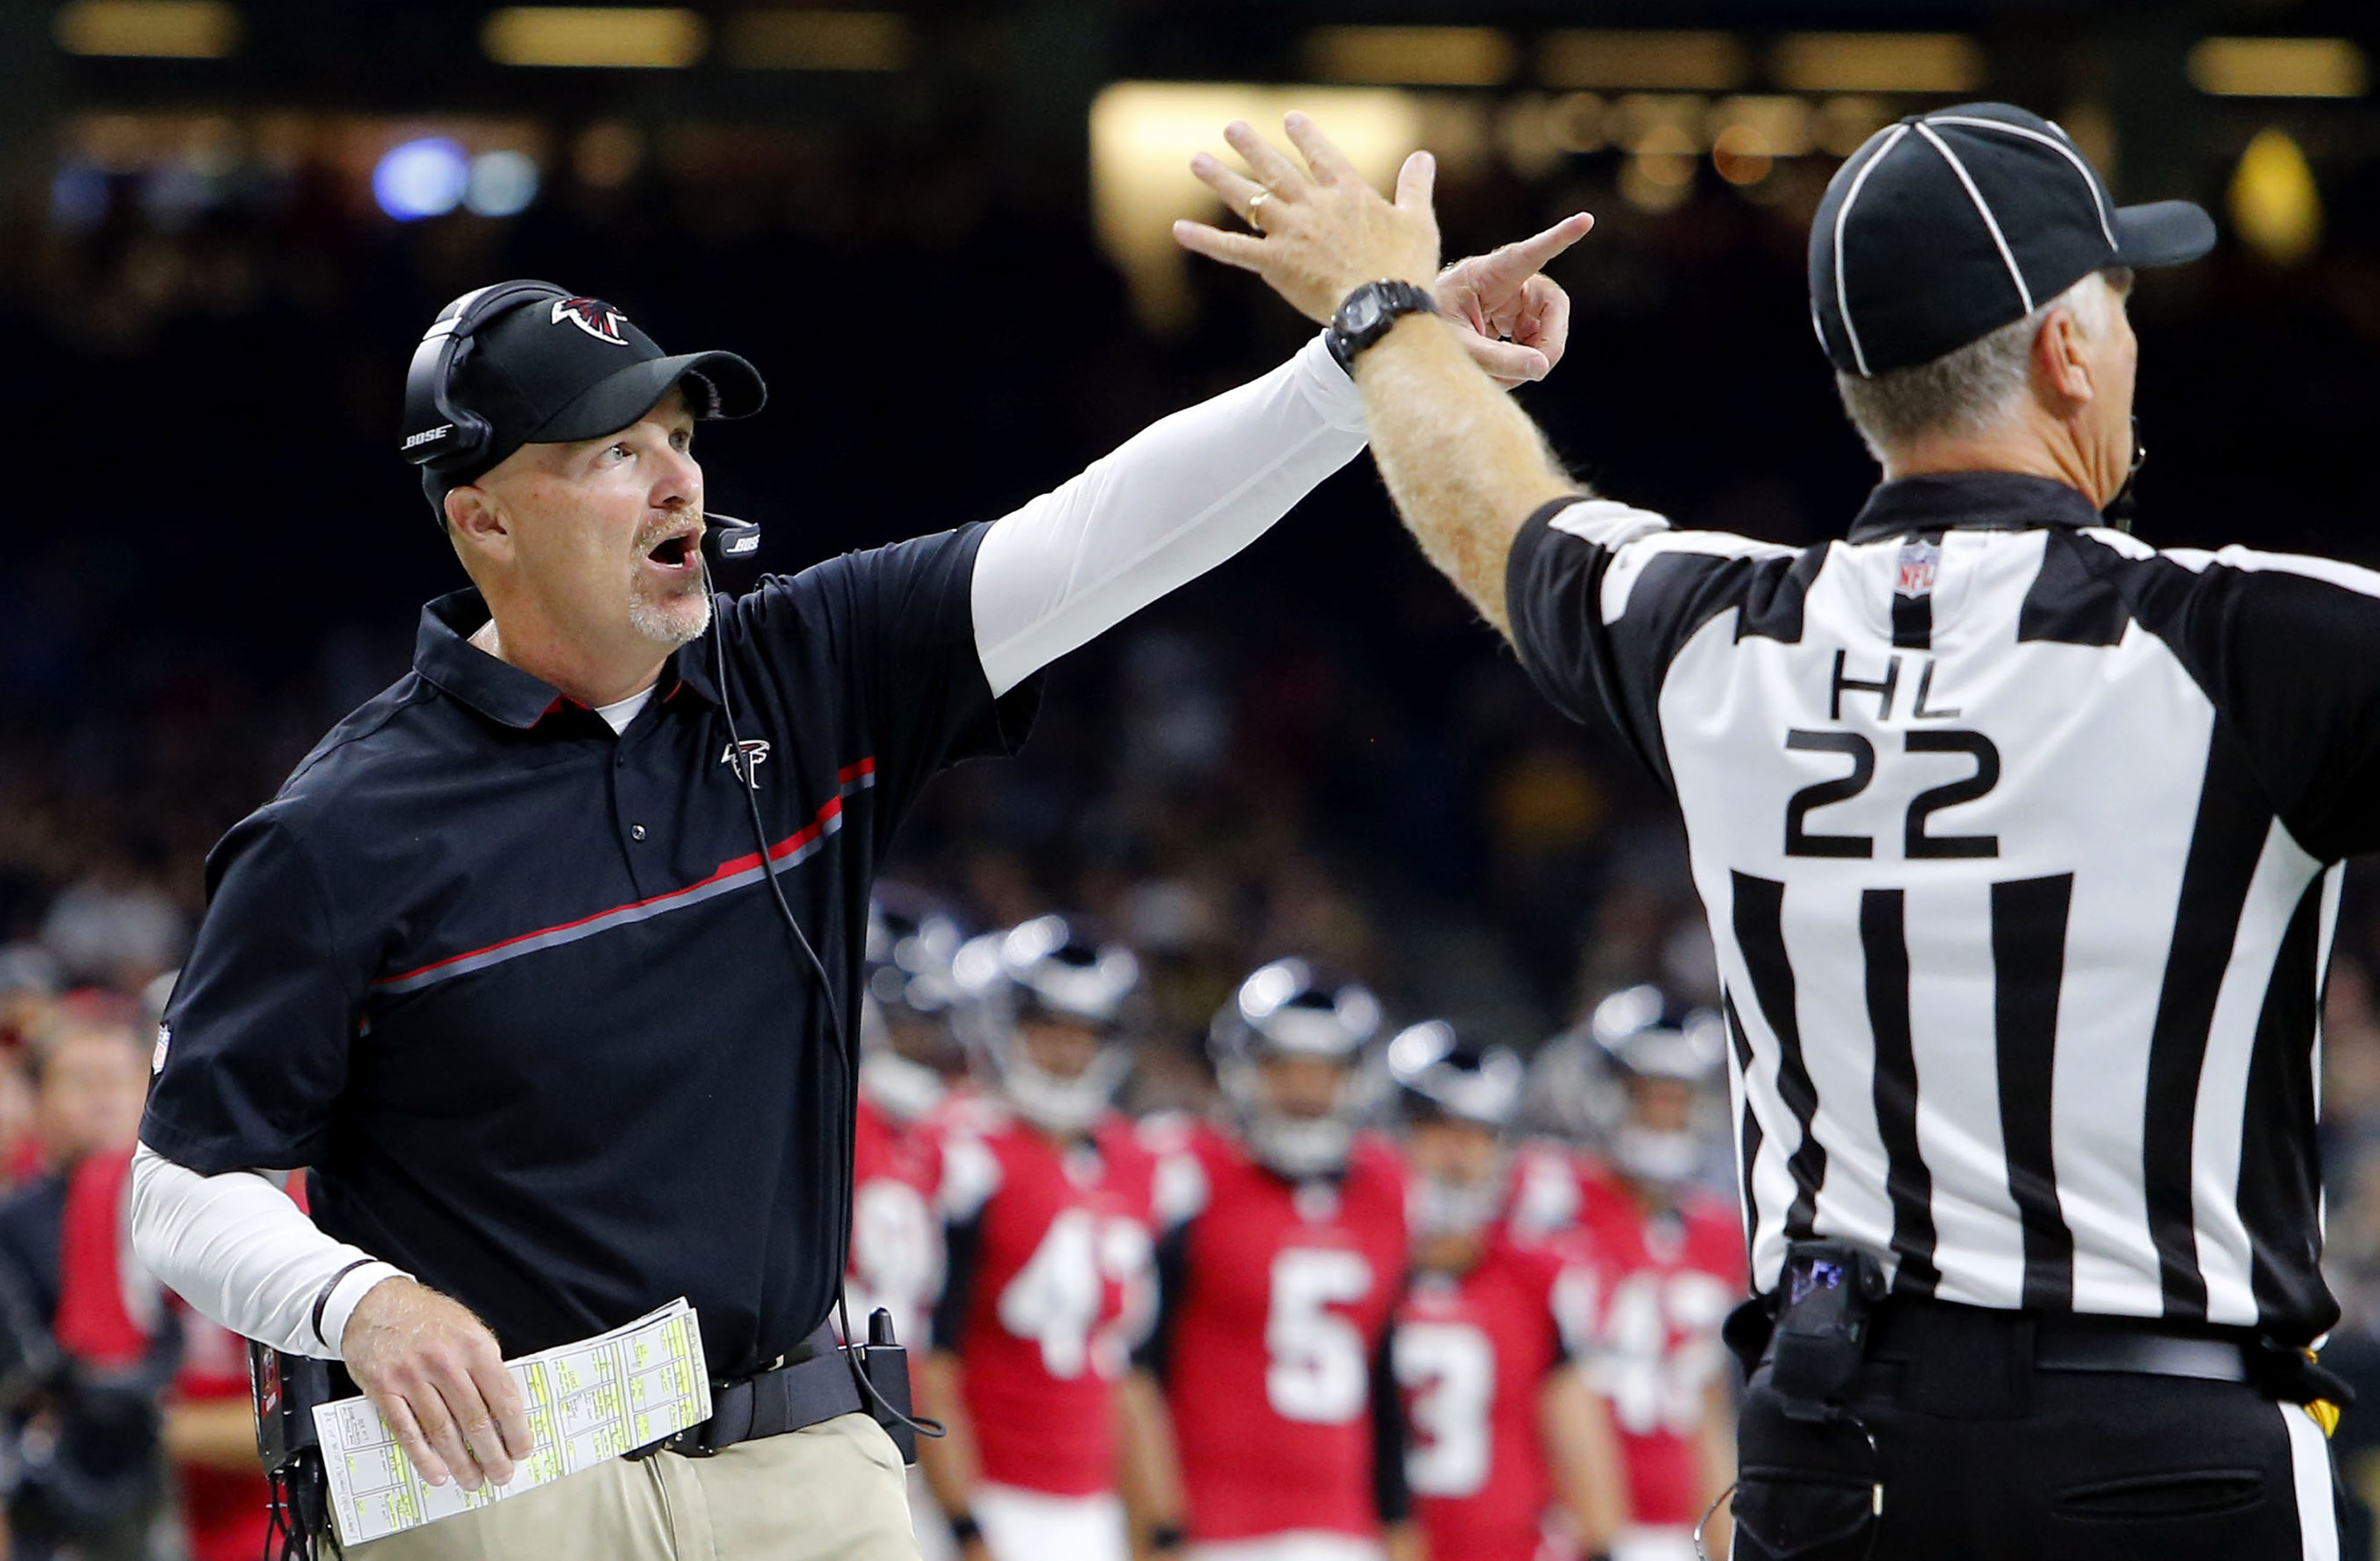 Atlanta Falcons head coach Dan Quinn challenges an official in the first half of an NFL football game against the New Orleans Saints in New Orleans, Monday, Sept. 26, 2016. (AP Photo/Butch Dill)